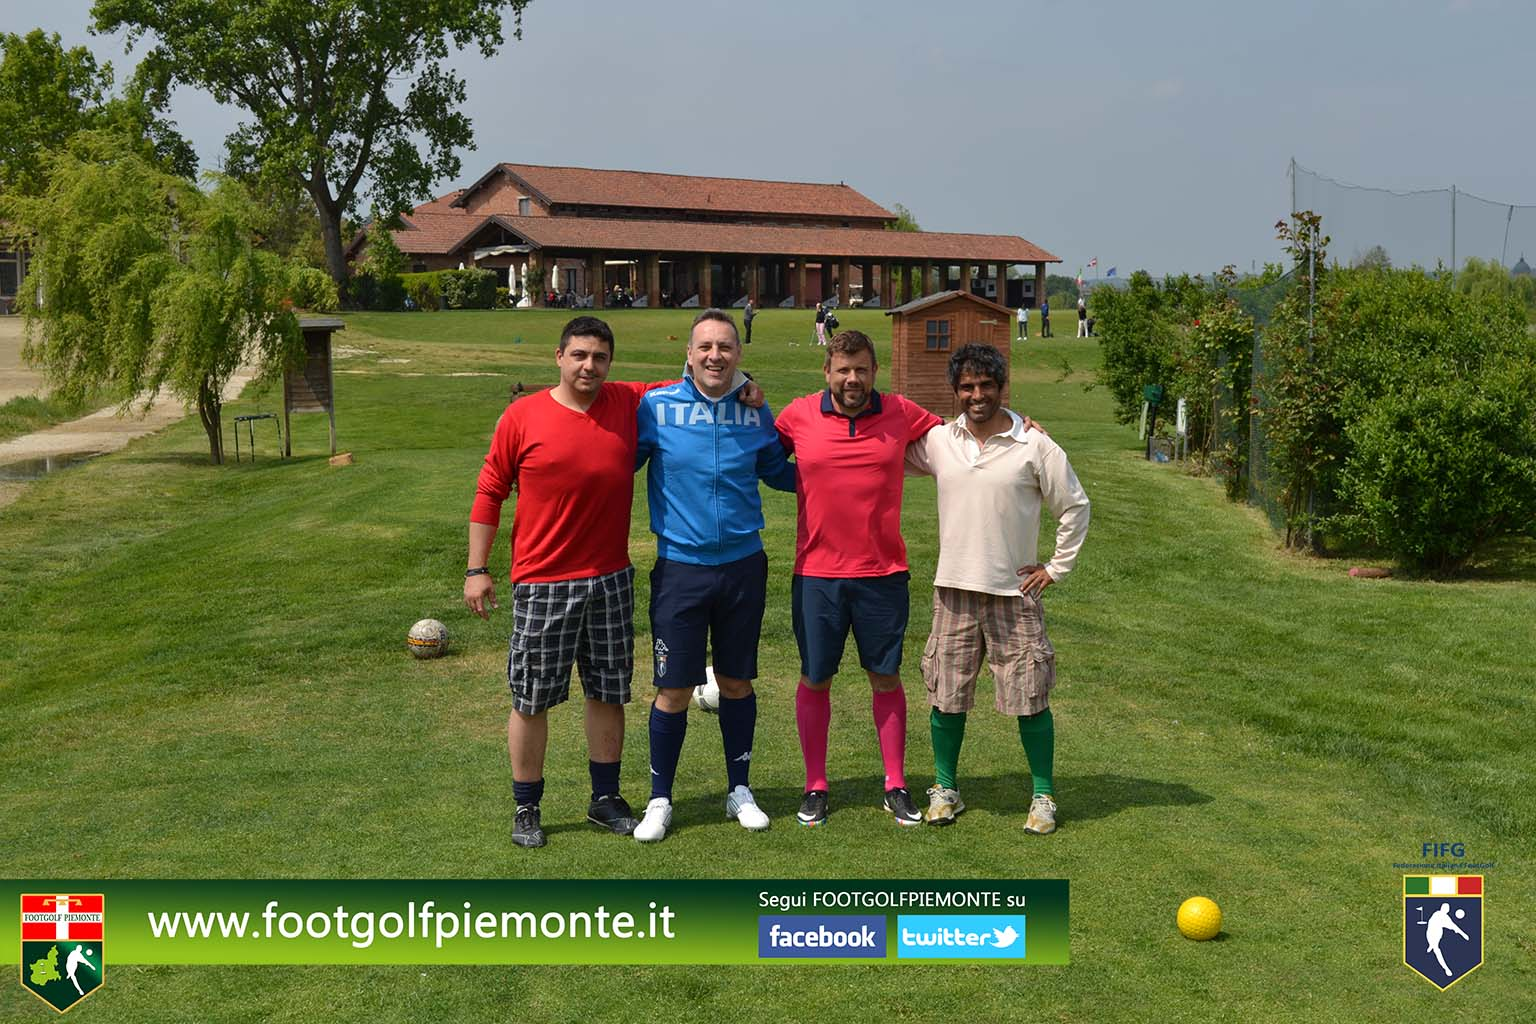 FOTO 9 Regions' Cup Footgolf Piemonte 2016 Golf Città di Asti (At) 30apr16-96